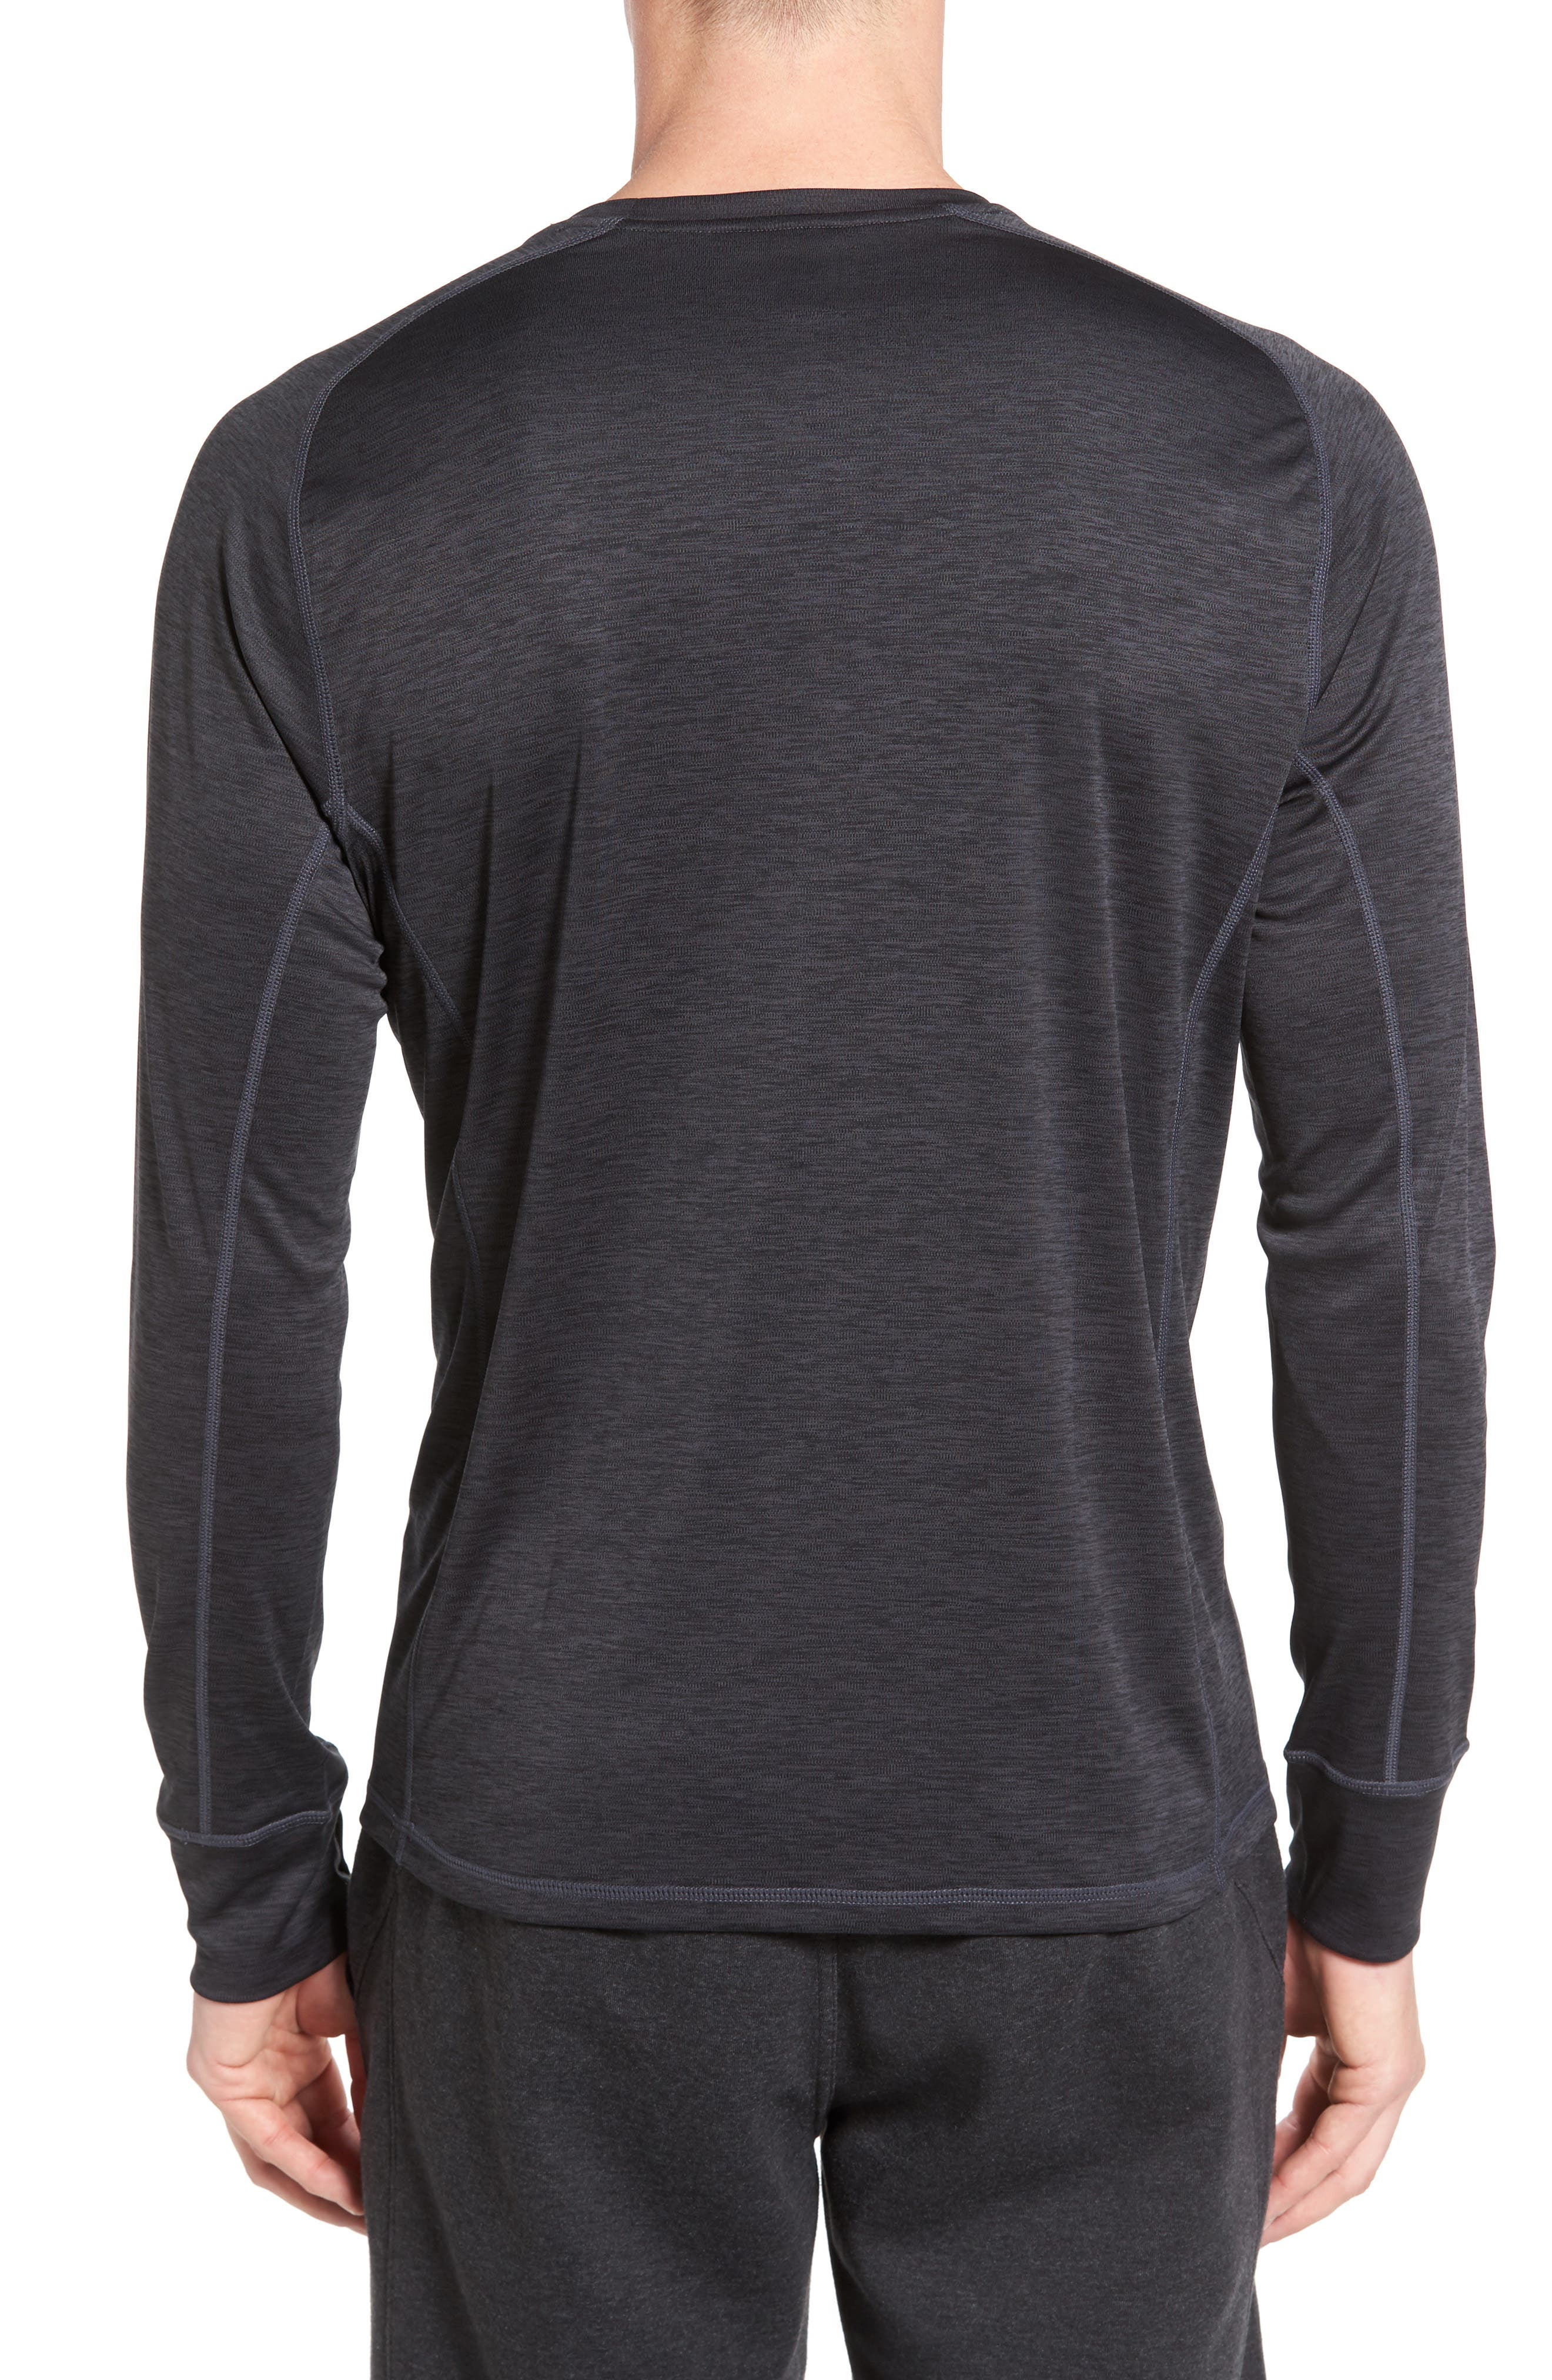 Triplite Long Sleeve T-Shirt,                             Alternate thumbnail 2, color,                             001